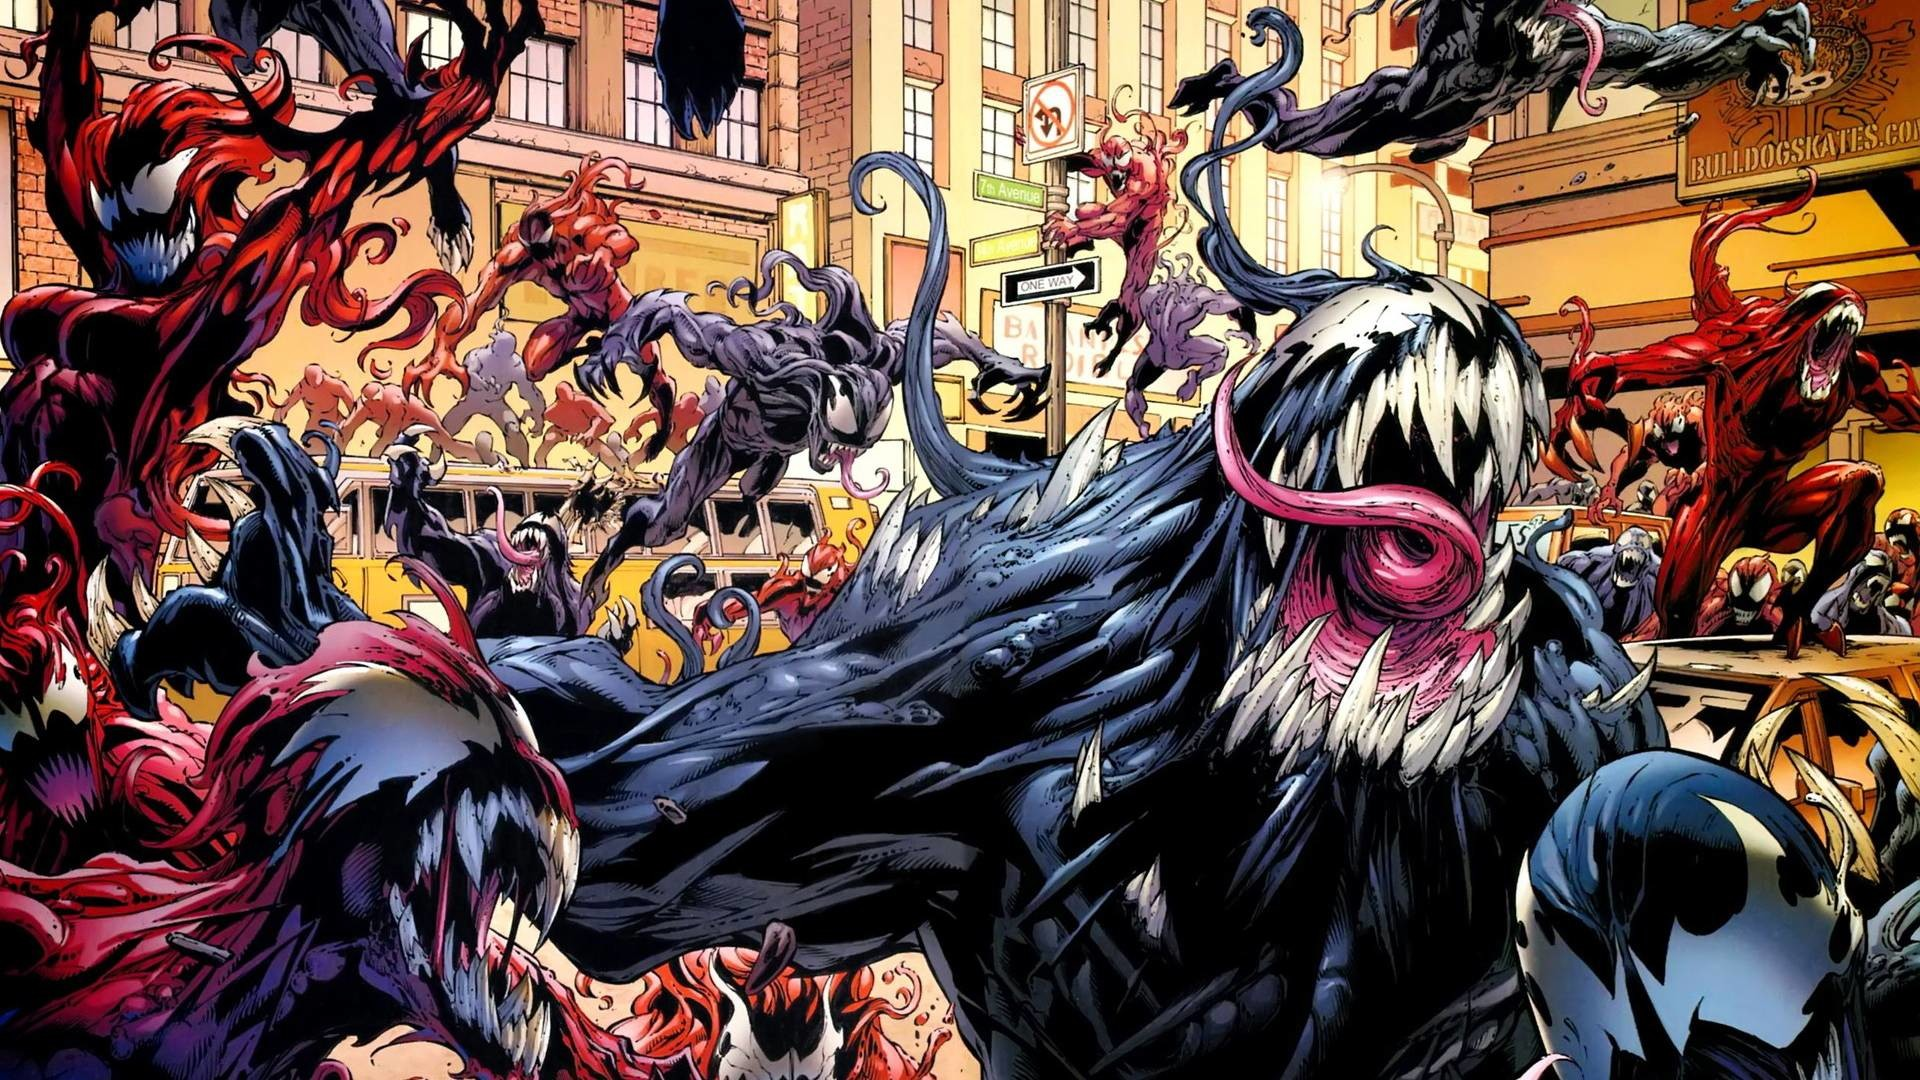 Dc Page Car and Related Pictures Wallpapers Of Marvel 1920x1080PX .